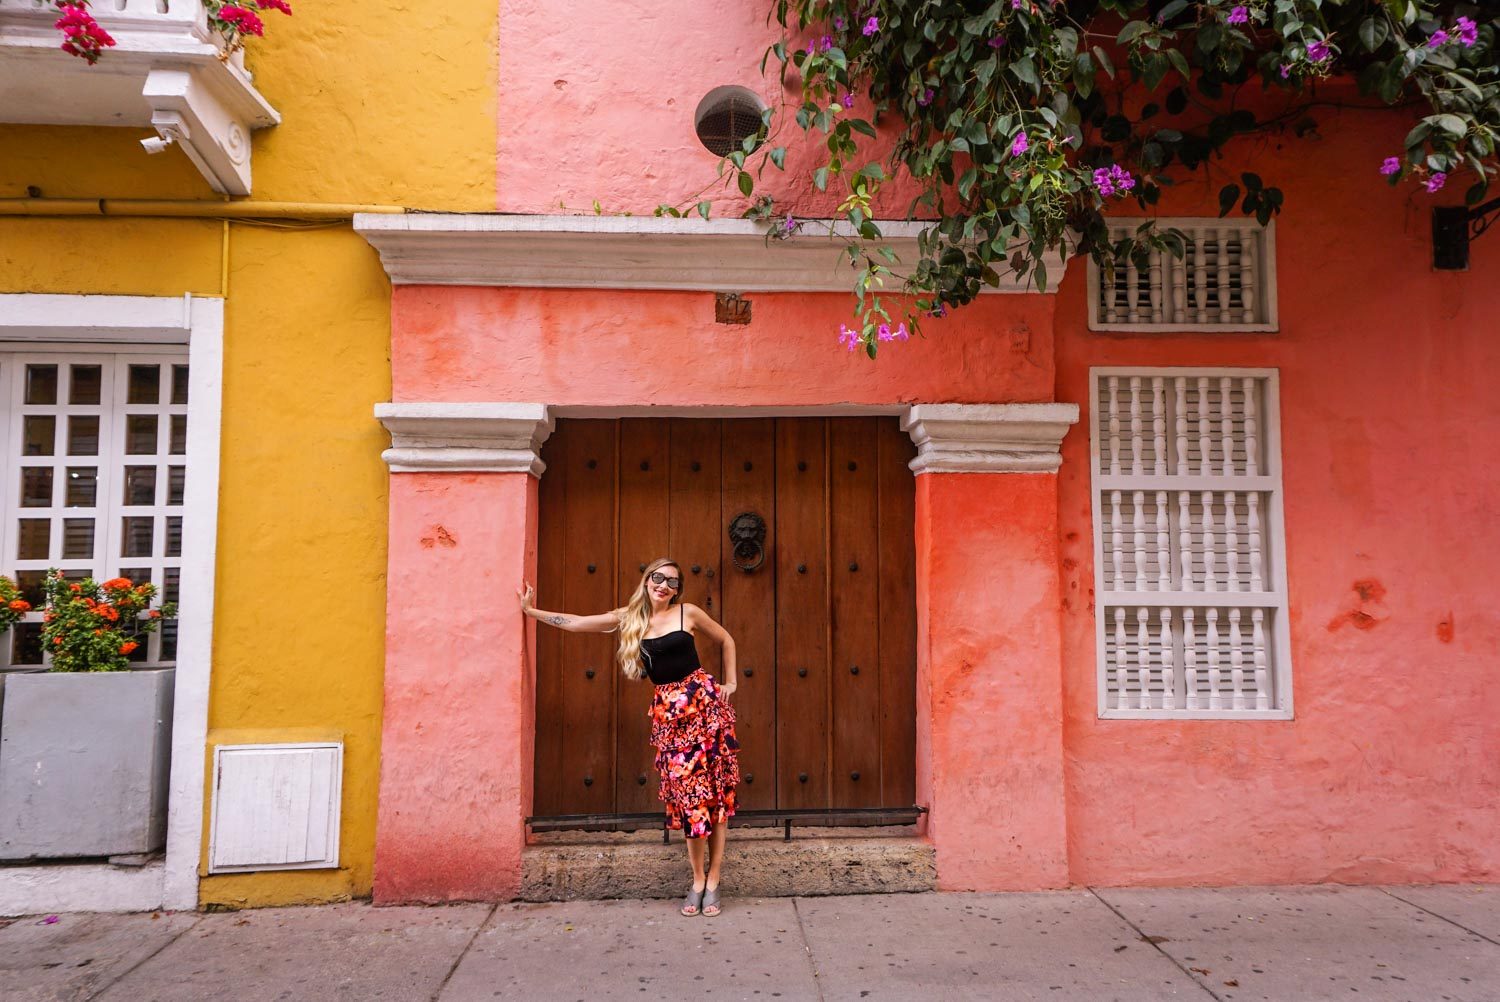 instagrammable spots in cartagena colombia